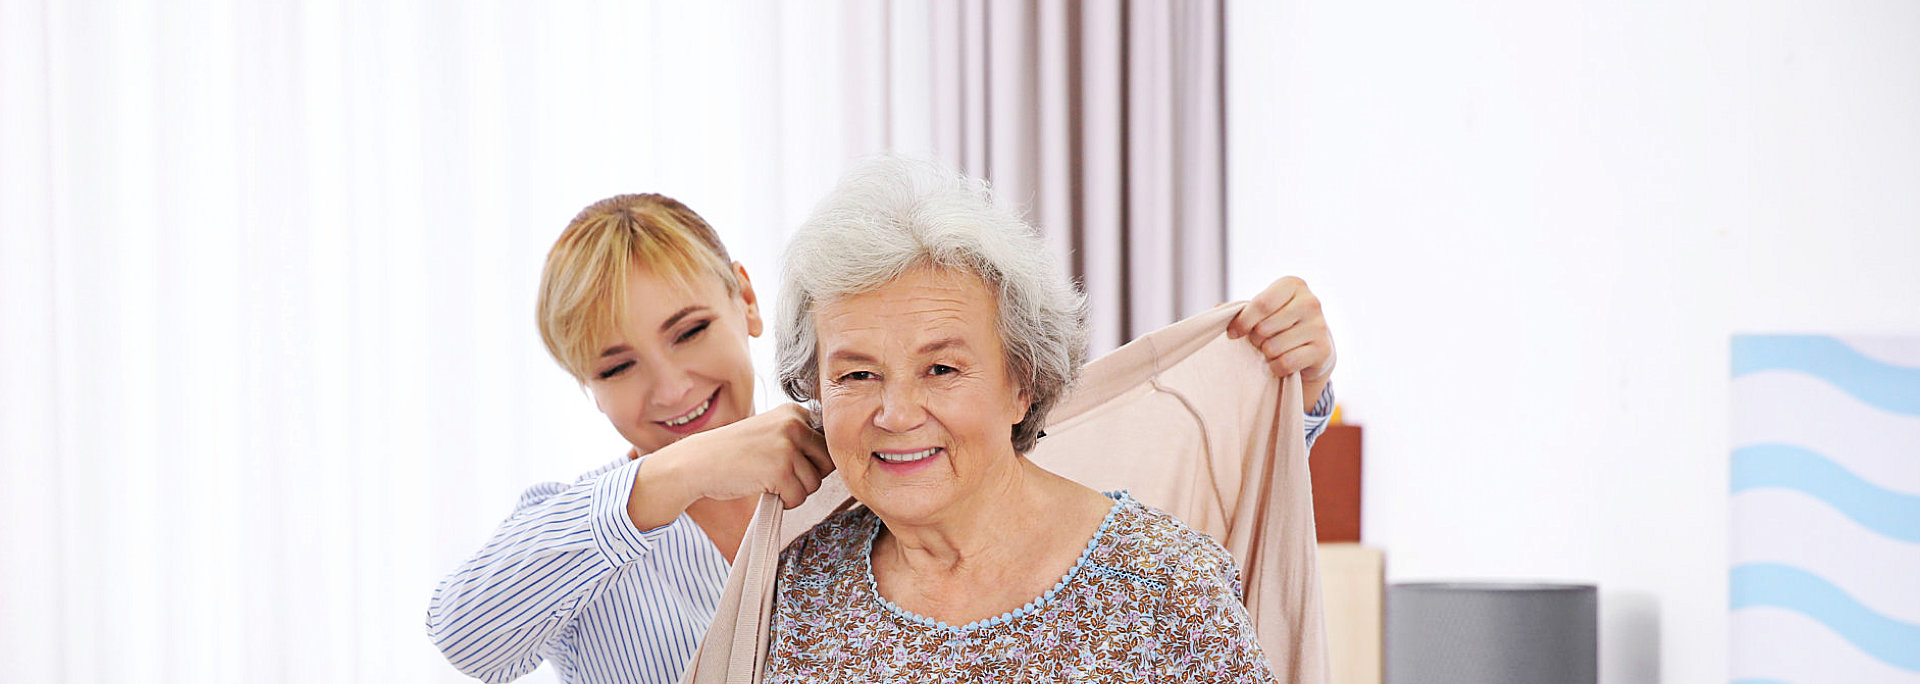 caregiver helping her patient to get clothes